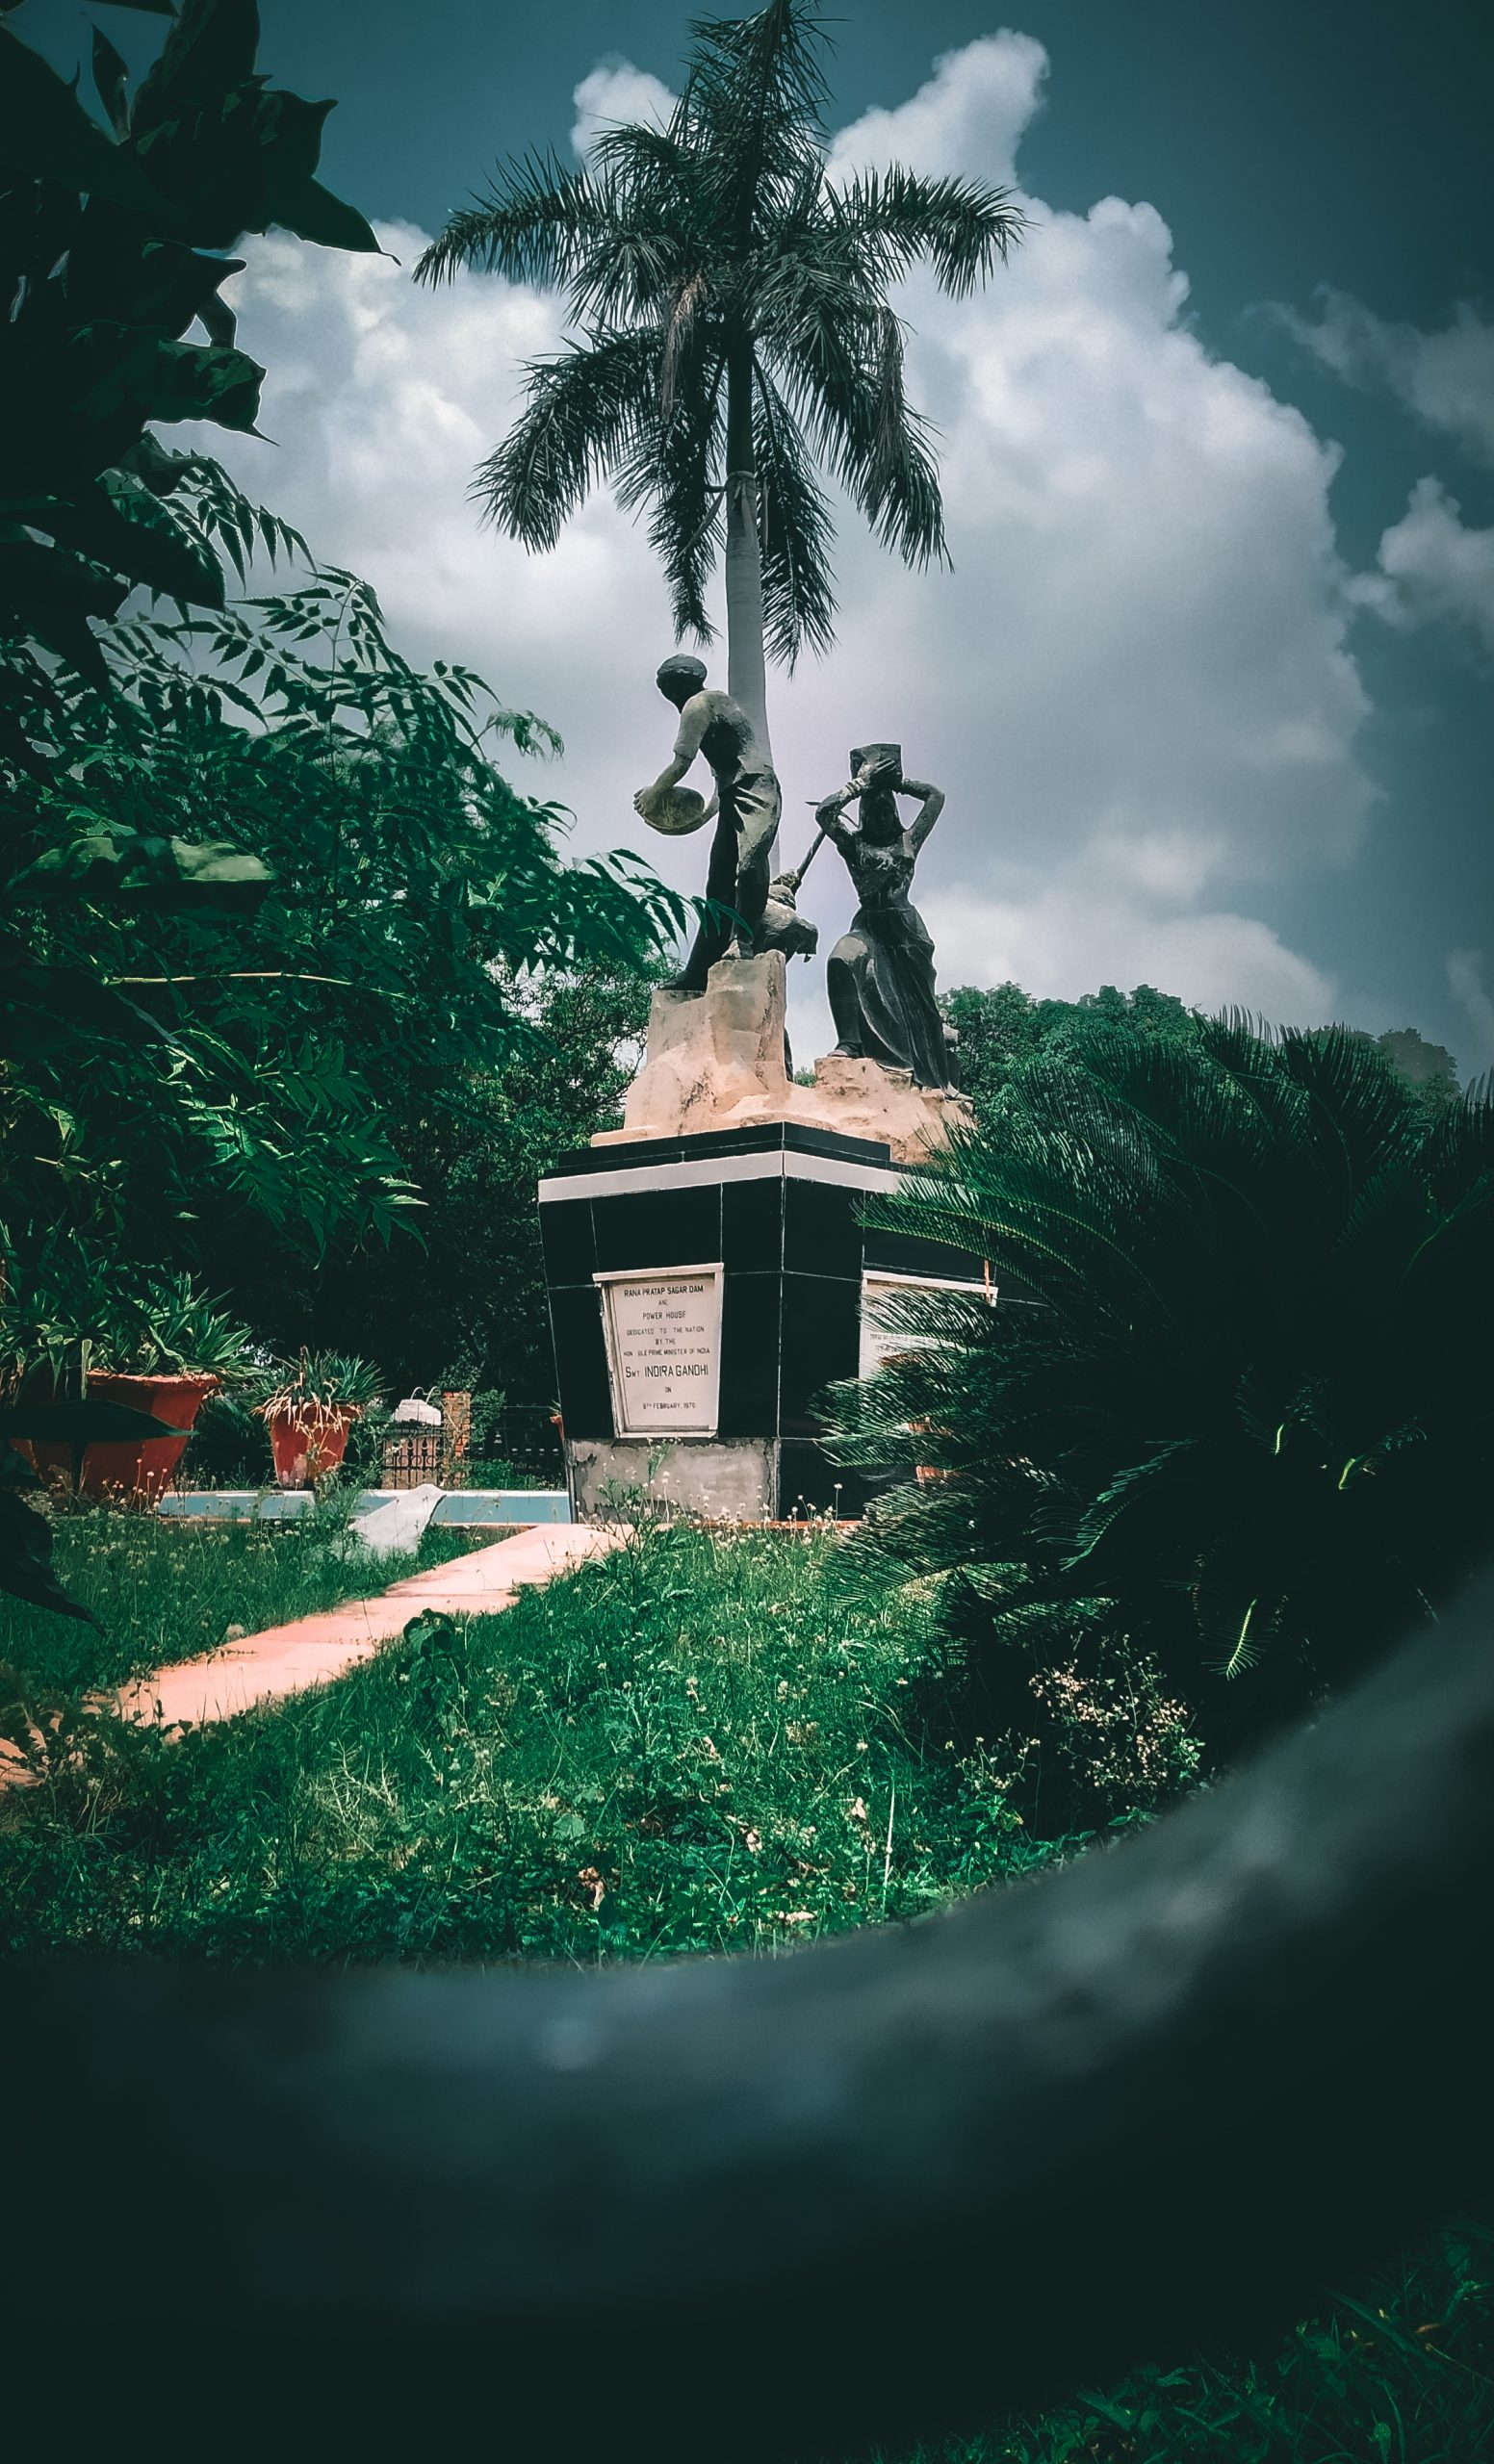 Statues of workers